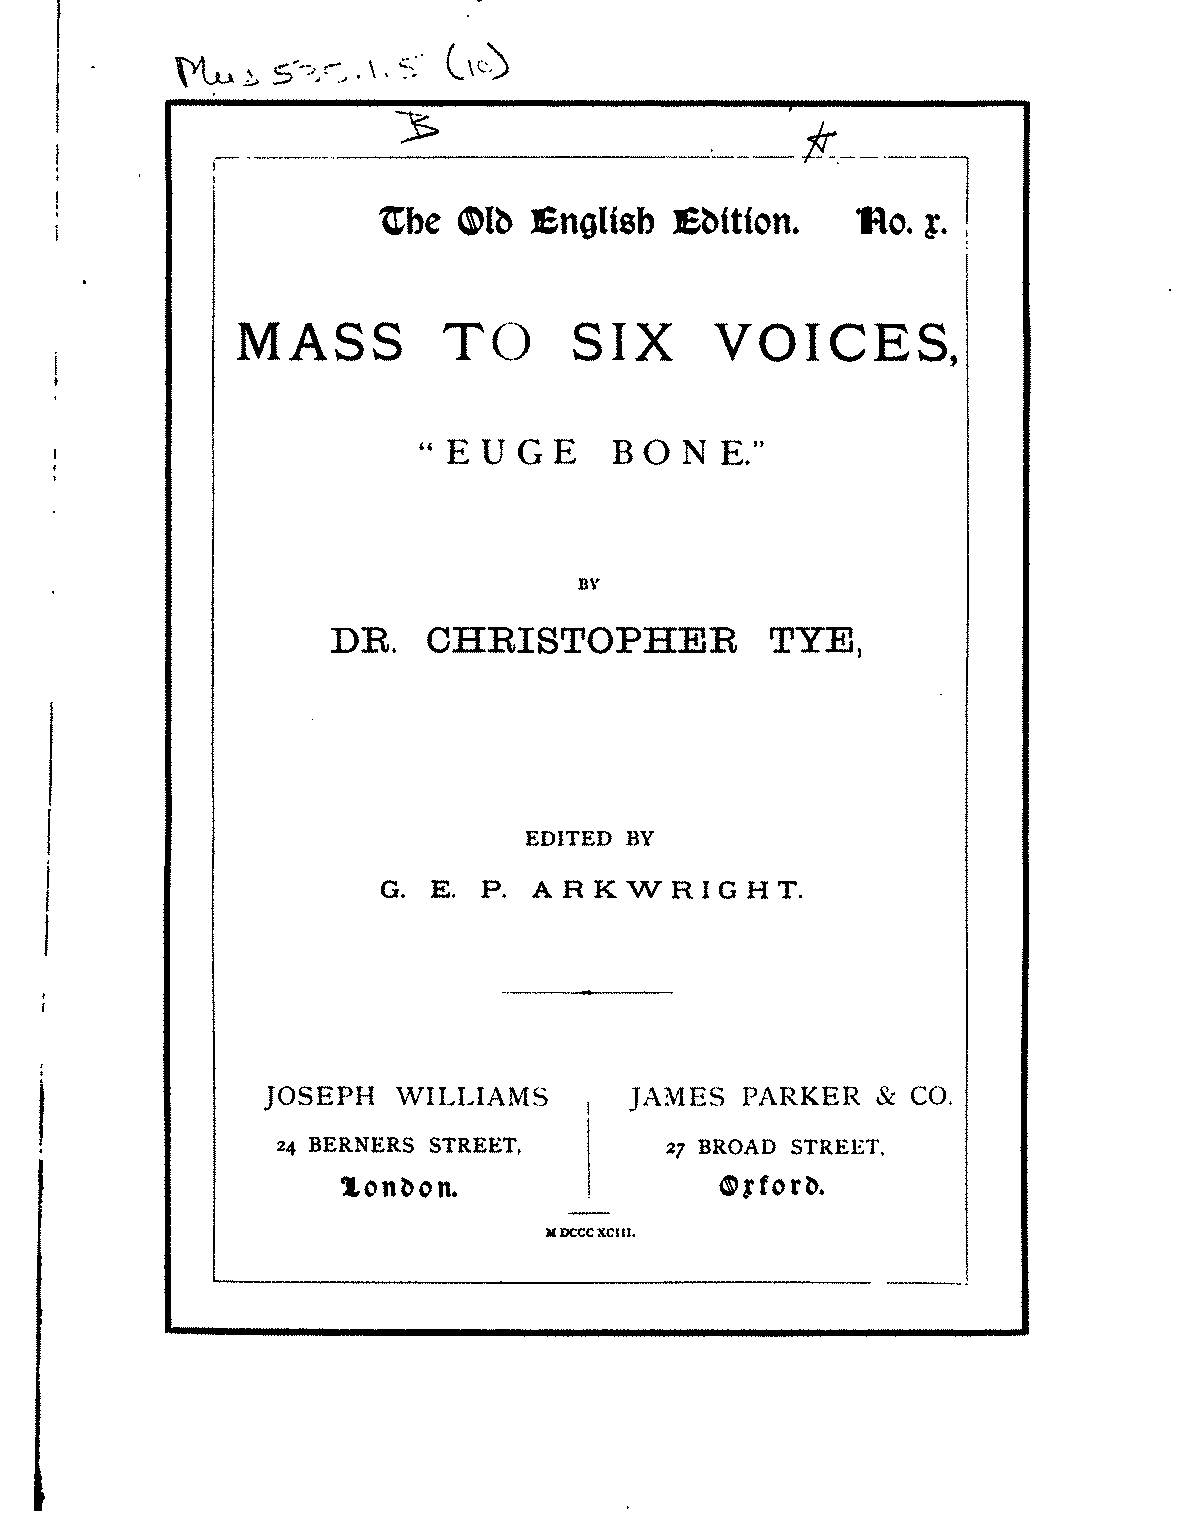 PMLP236852-Mass to six voices Euge bone.pdf